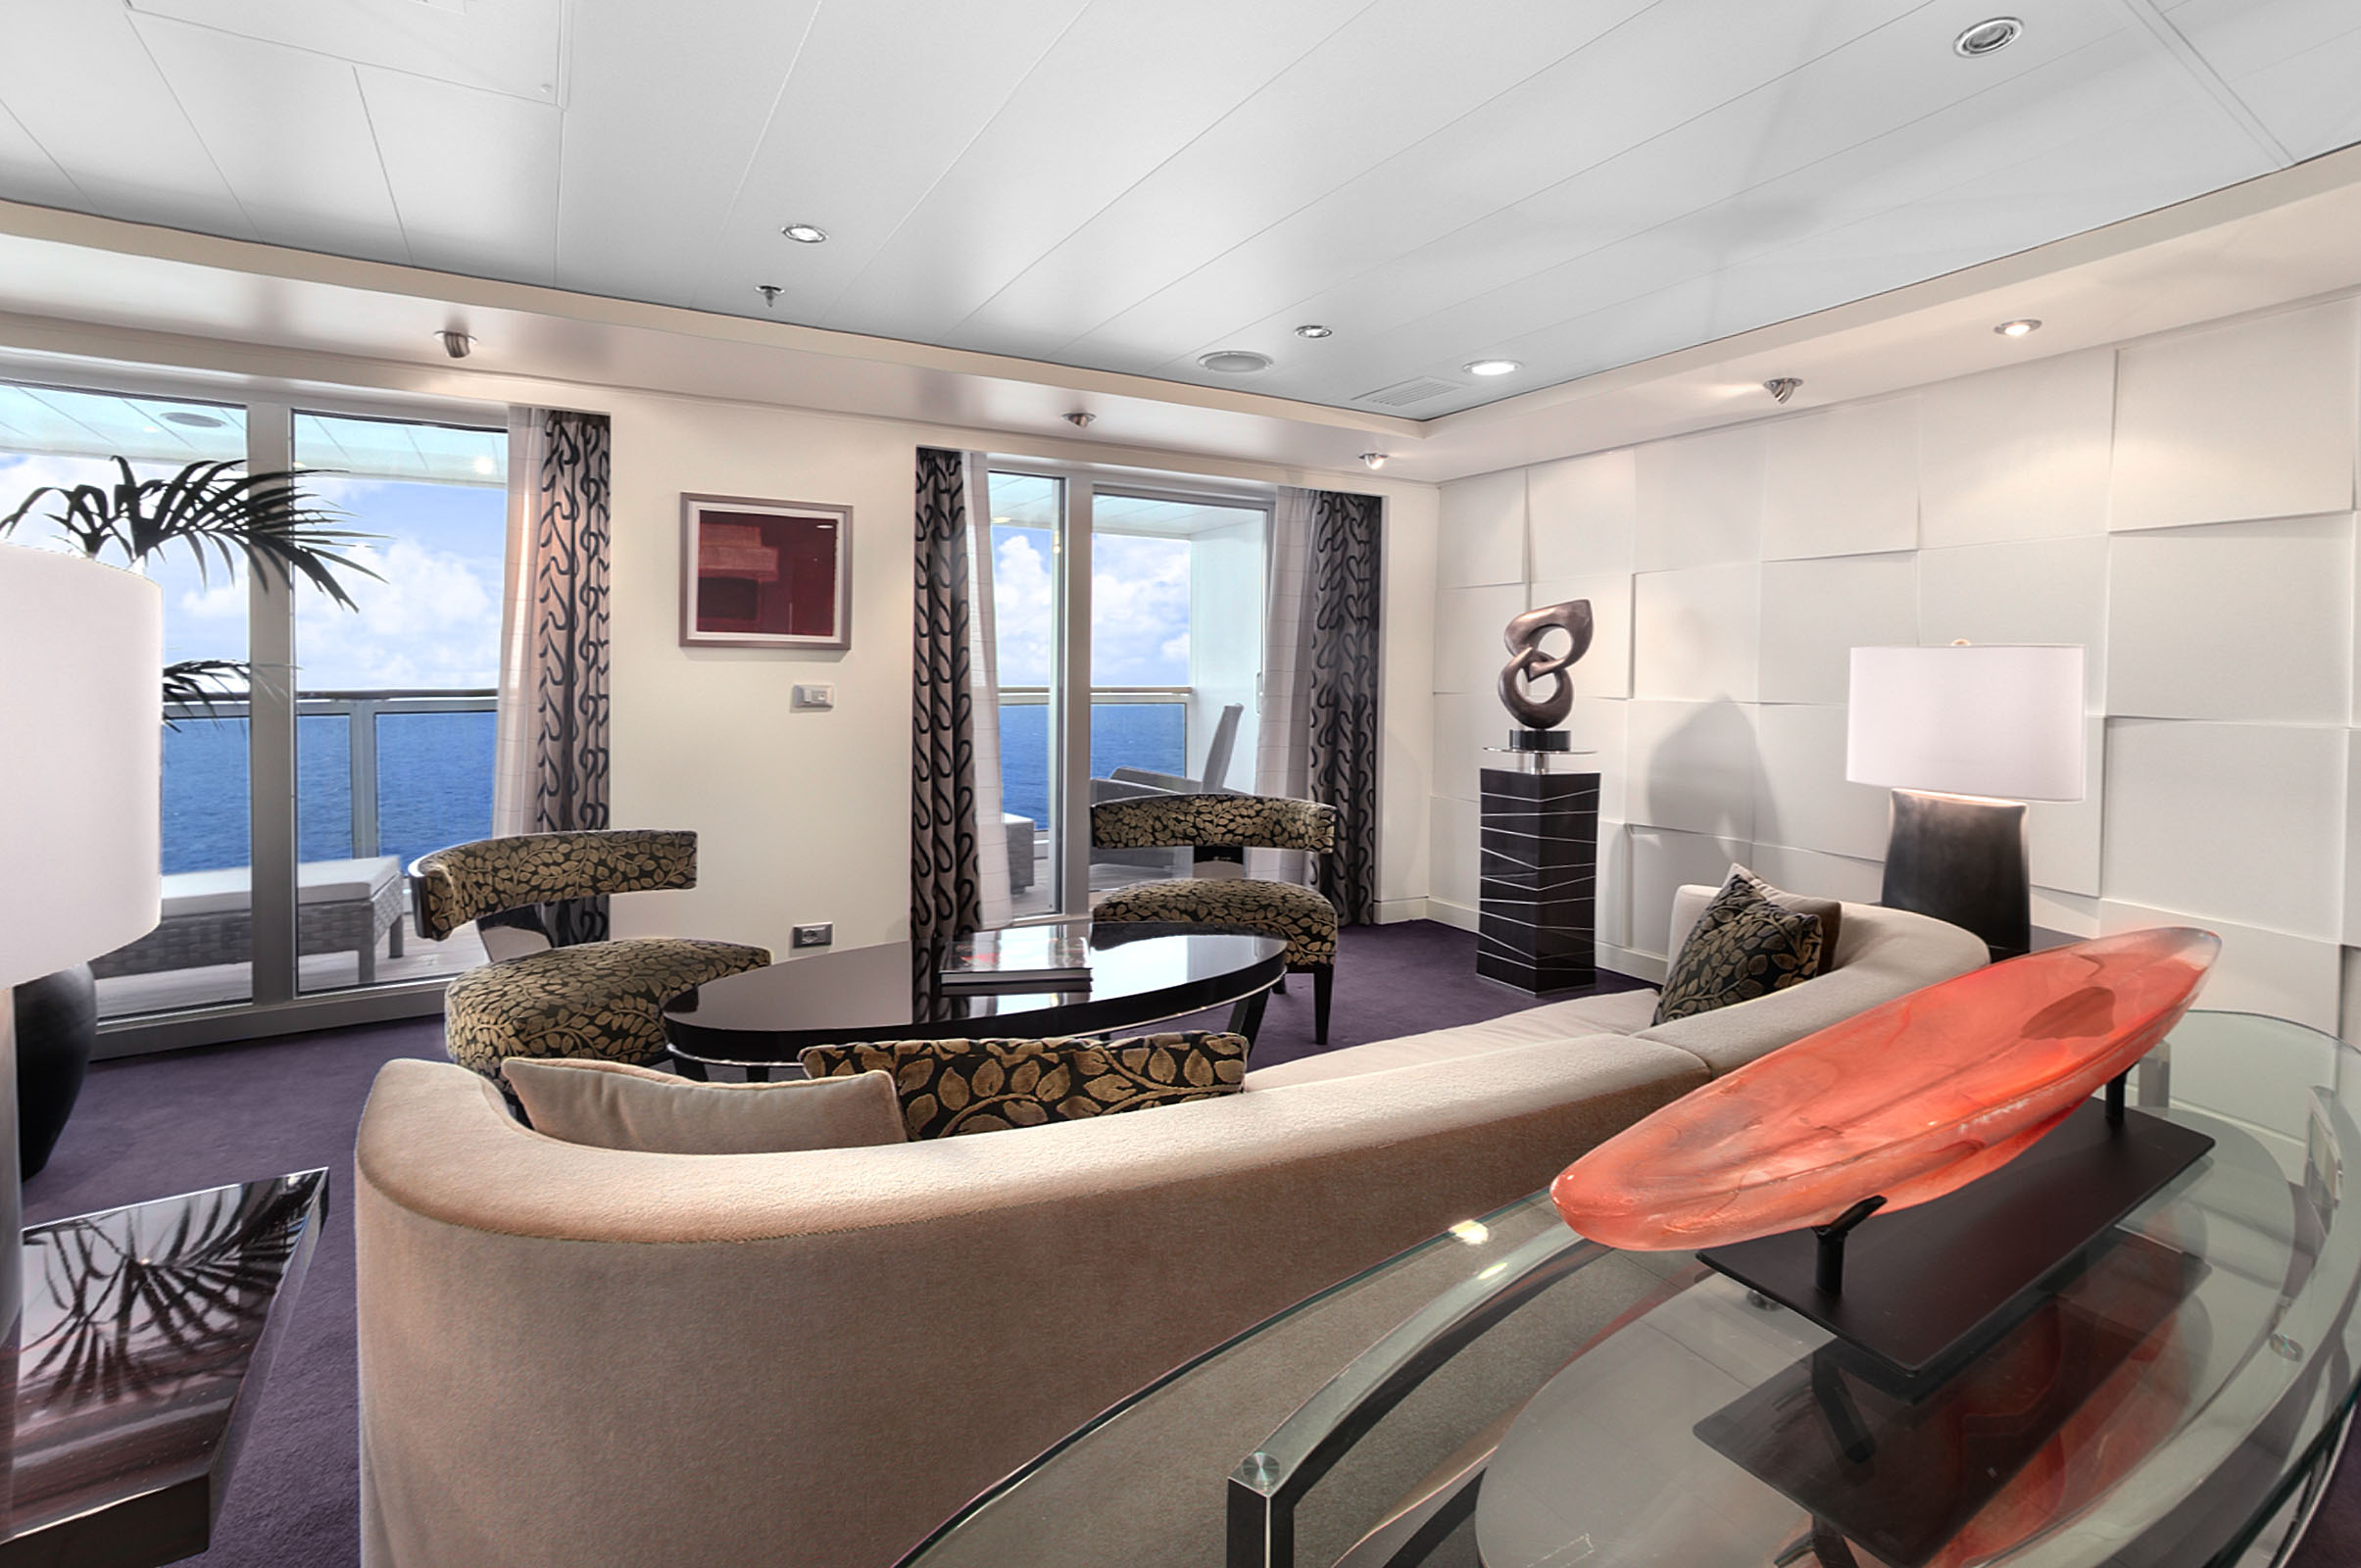 Oceania Cruises Oceania Class Accommodation Oceania Suite Living Room.jpg